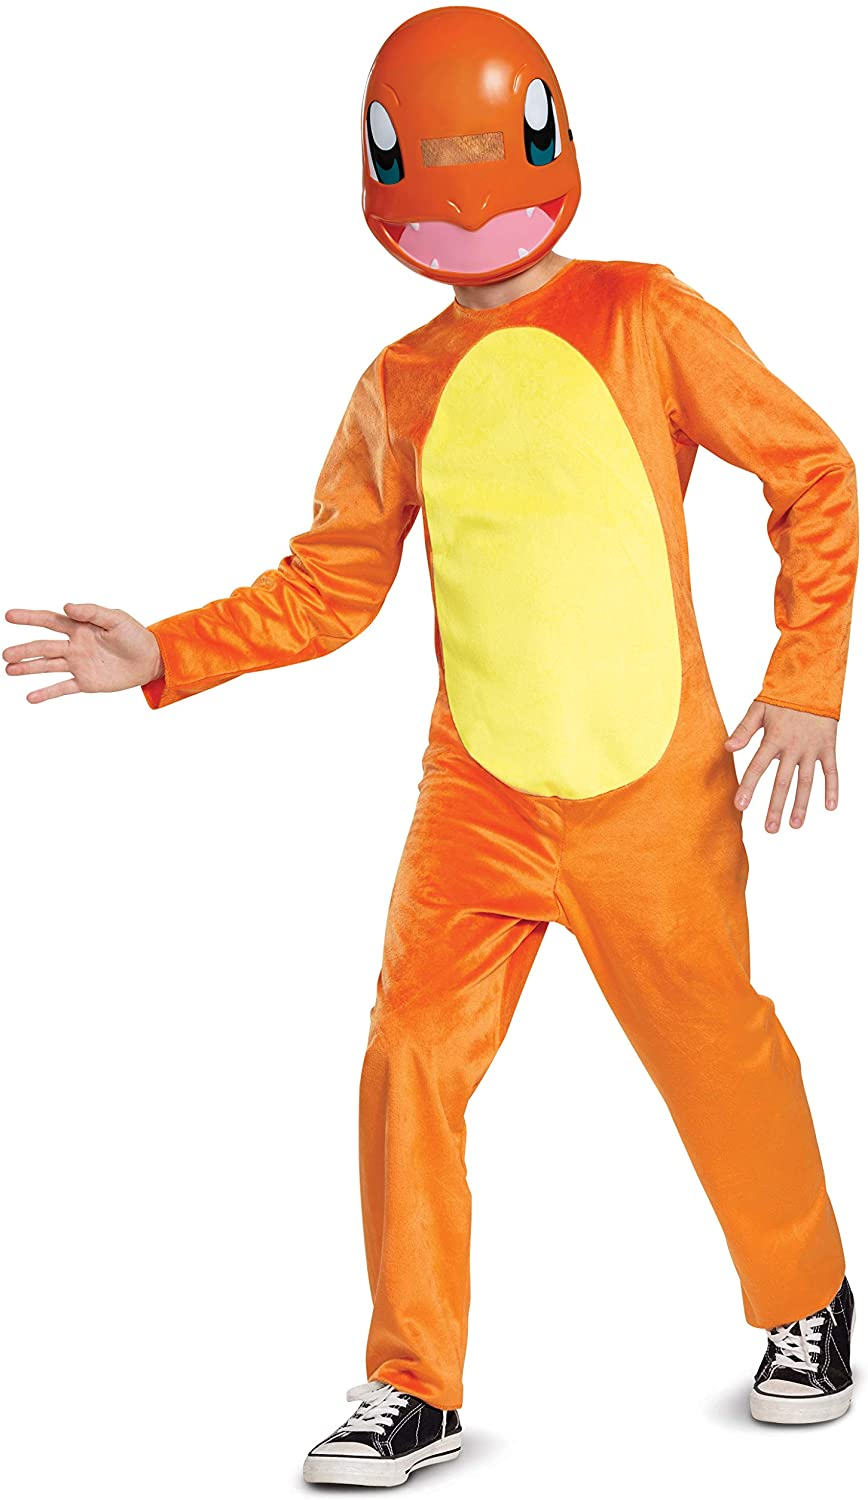 Pokemon Charmander Kids Costume, Children's Classic Character Outfit, Child Size Small (4-6) Orange